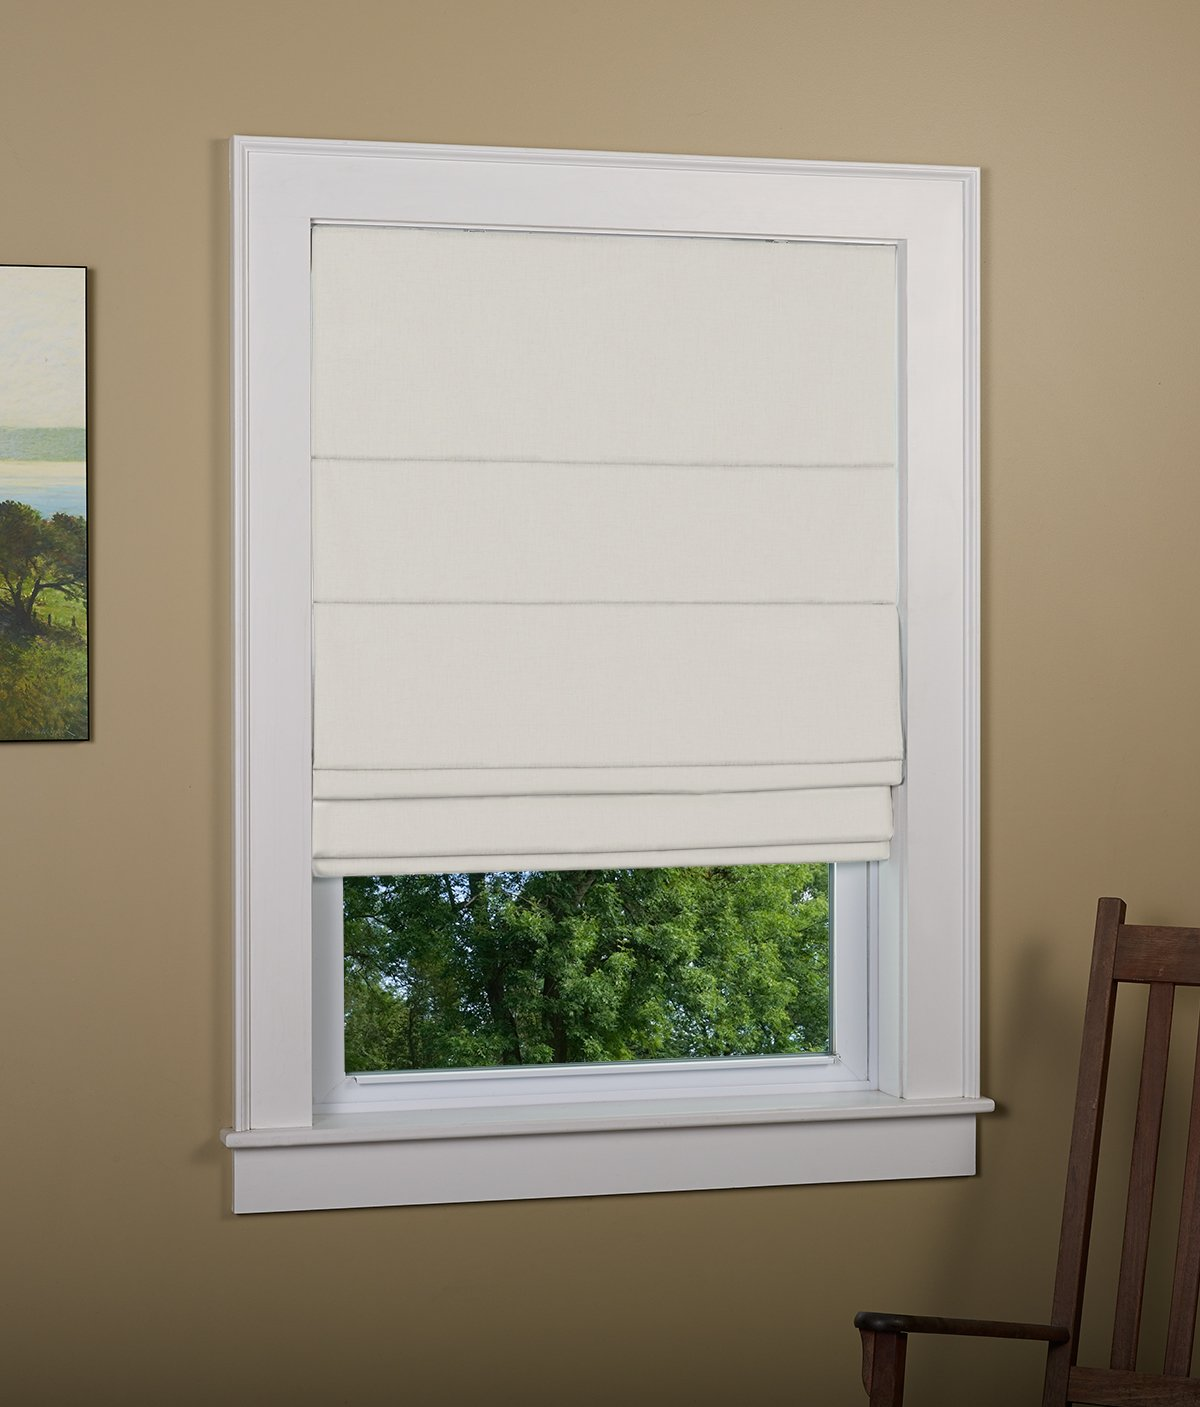 Green Mountain Vista, Thermal Blackout Cordless Roman Shade - Size: 27x63 Inch Color: Grey 2020-027GY